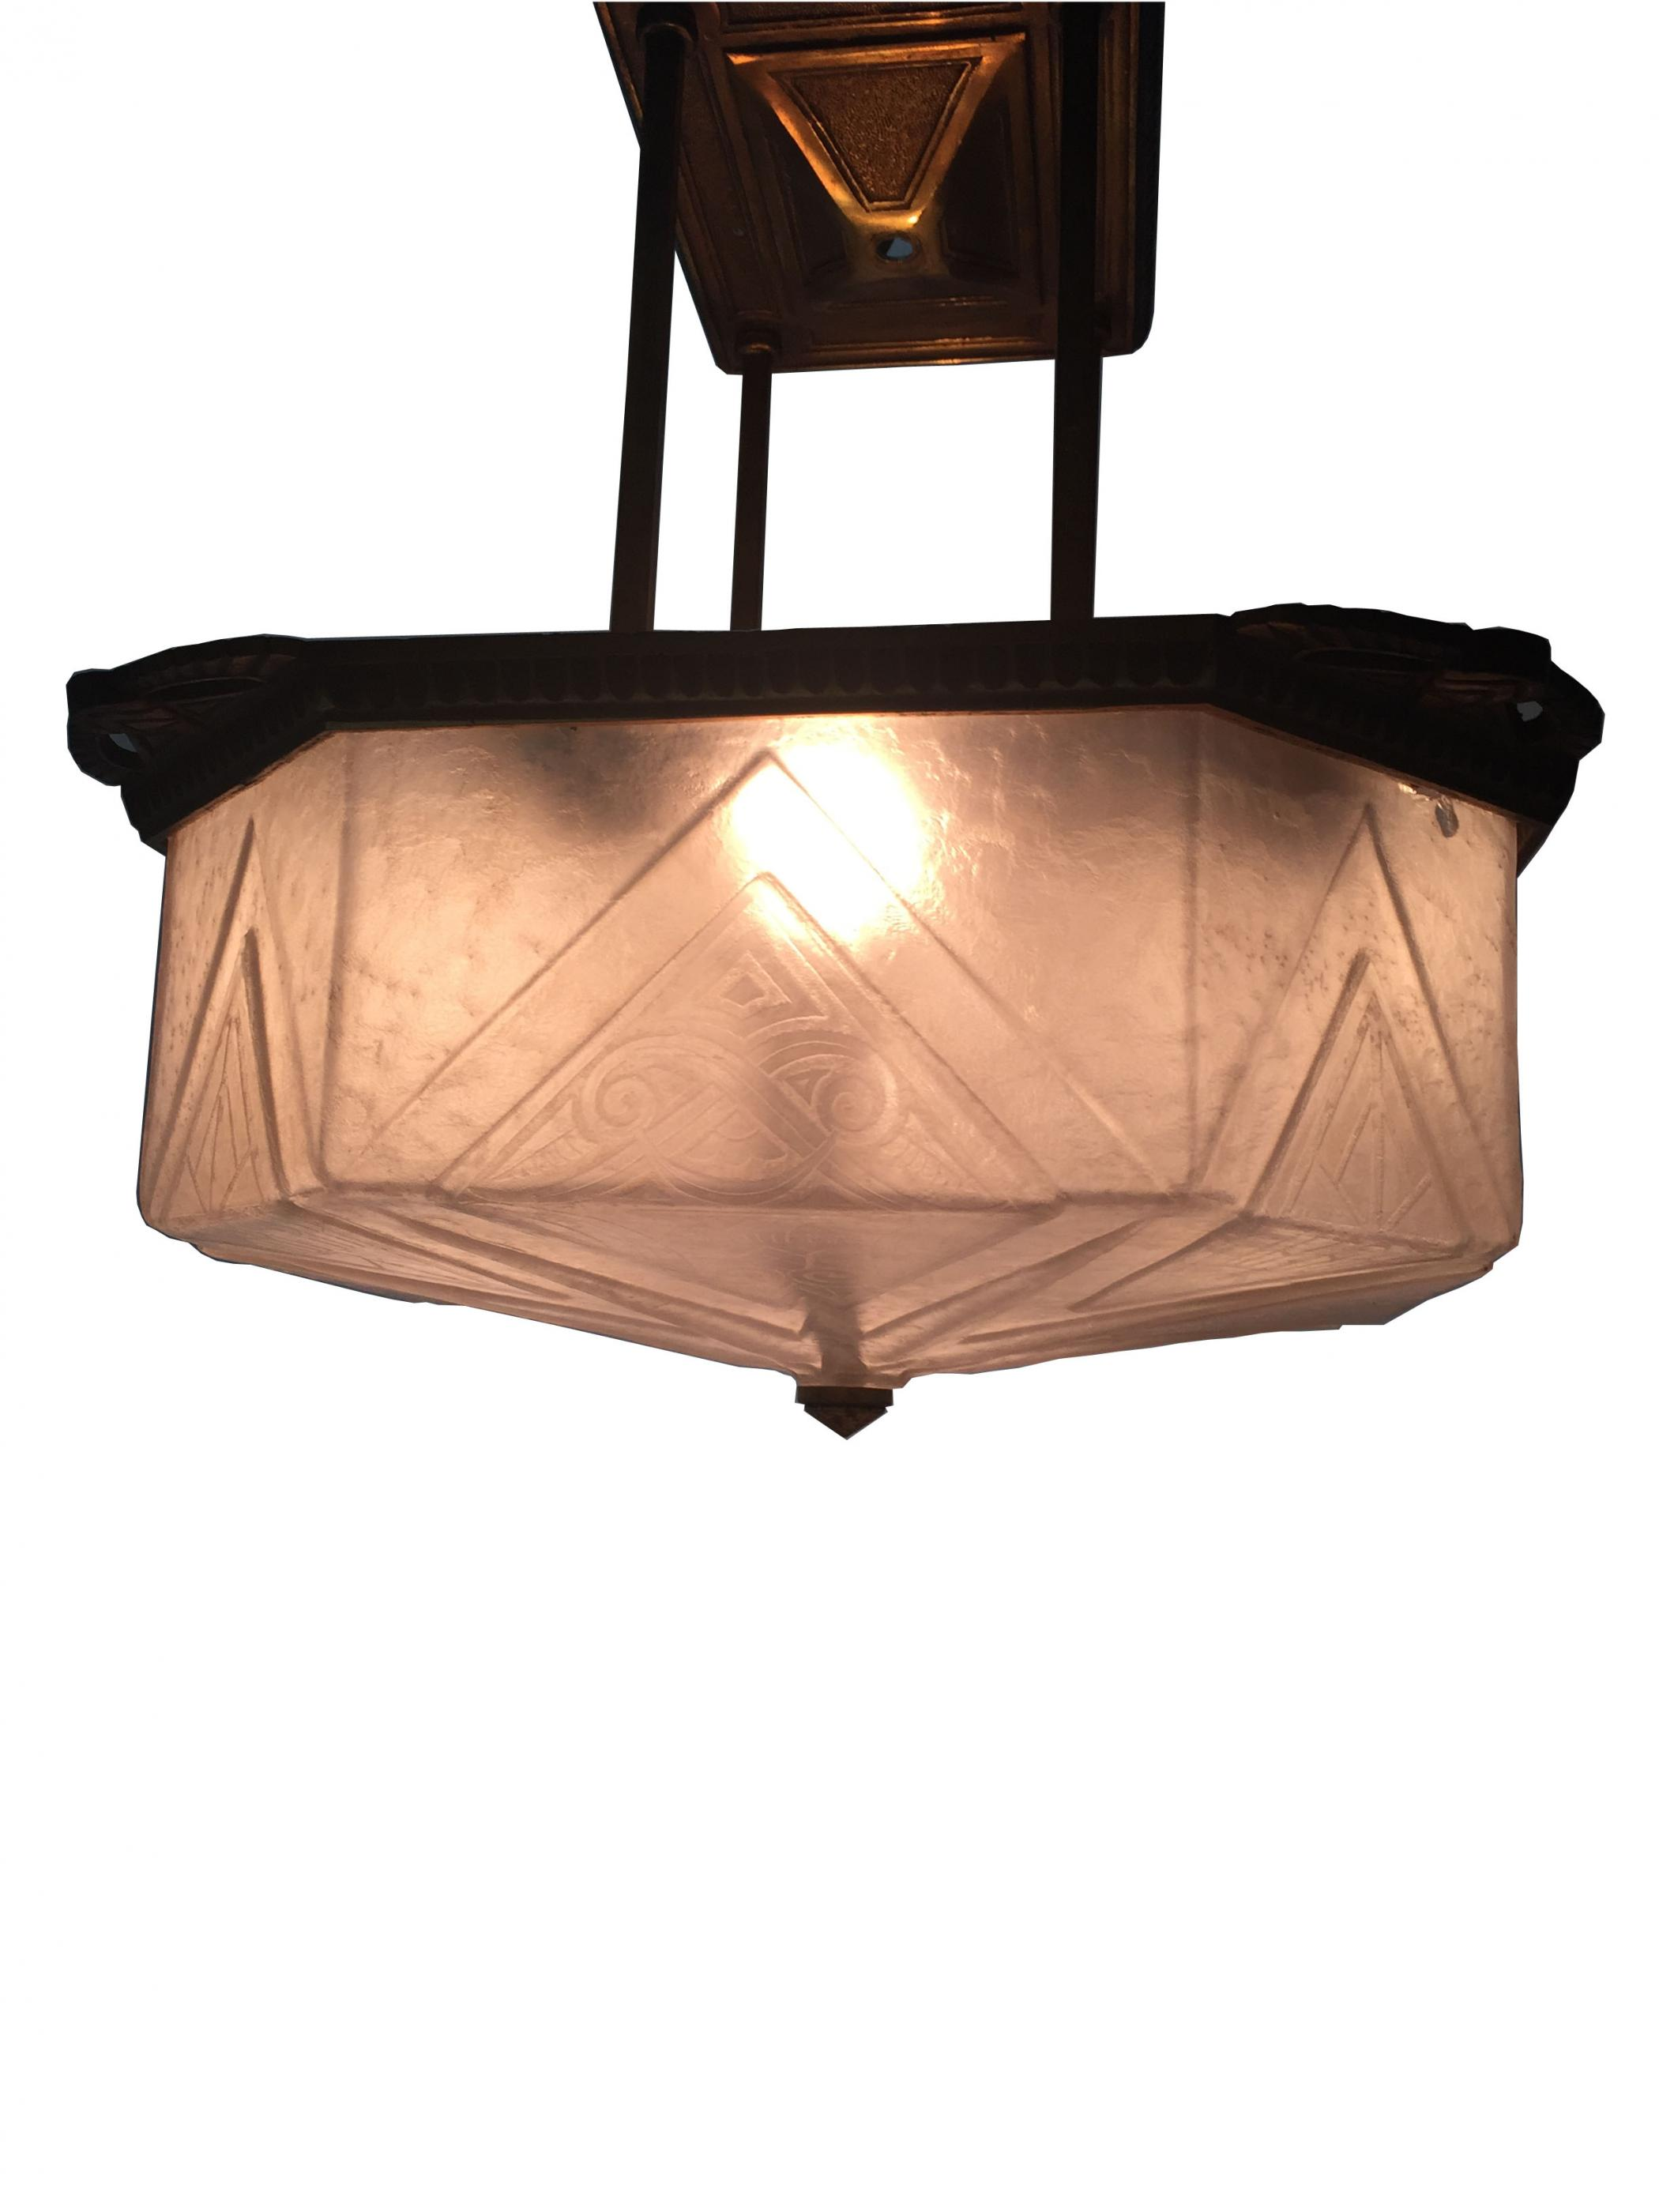 art circa satin brass deco light chandelier furniture ceiling ceilings flush lamp ufo lighting glass id at f graphical lights org mount